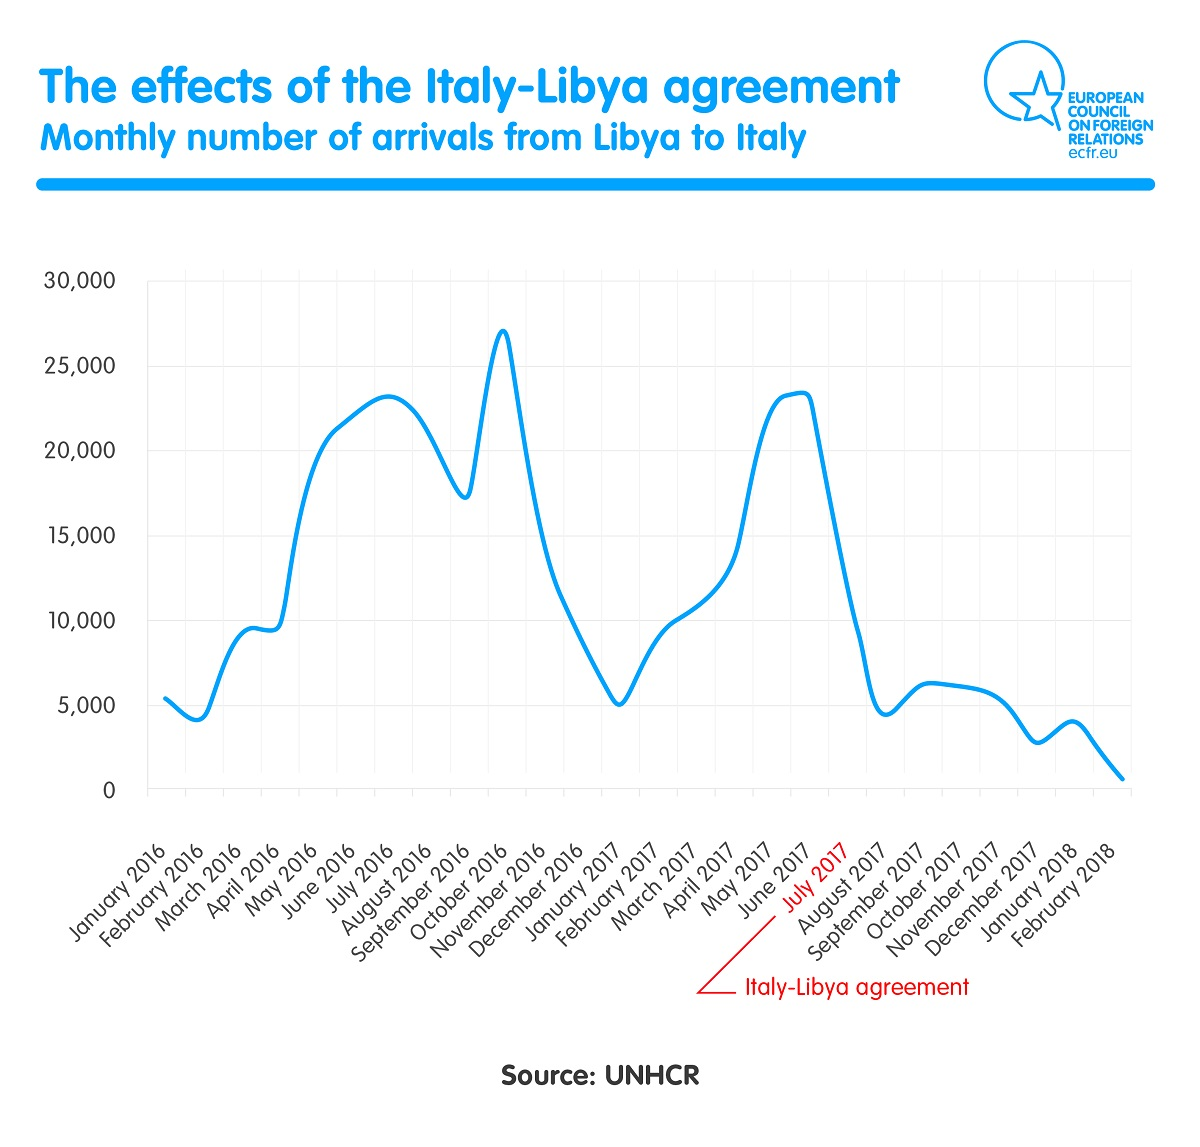 monthly numbers of arrivals from Libya to Italy